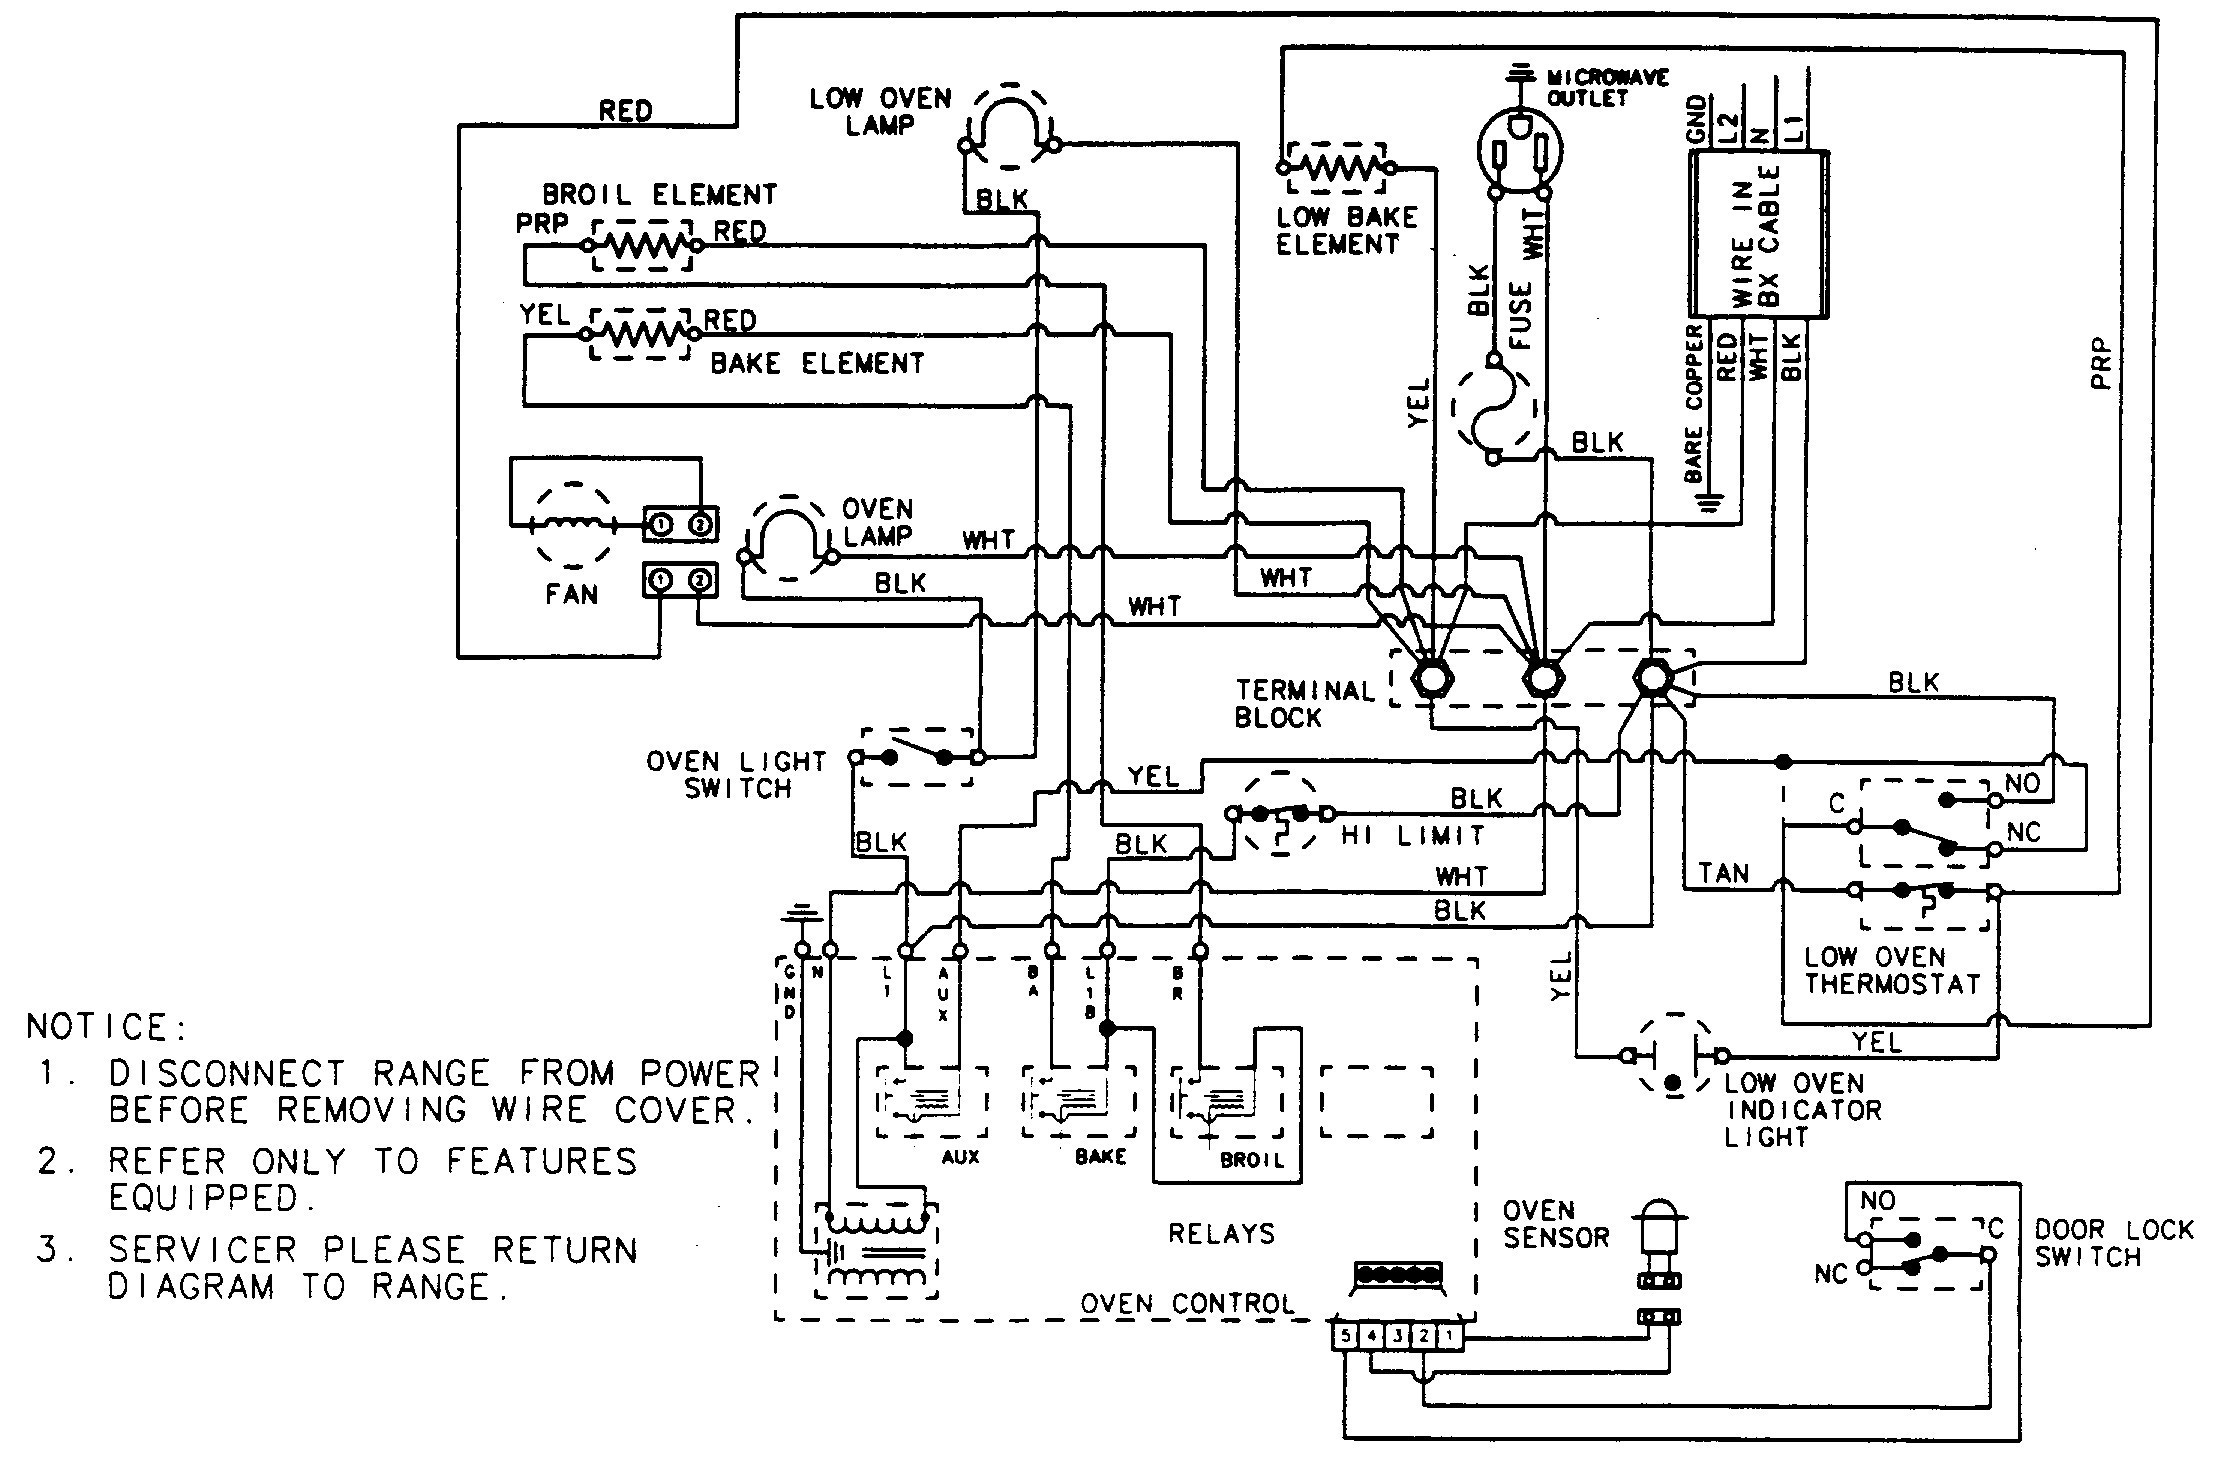 wiring diagram for whirlpool double ovens 7 11 tridonicsignage de \u2022whirlpool double oven wiring diagram wiring schematic diagram rh 94 twizer co electric oven wiring diagram stove wiring